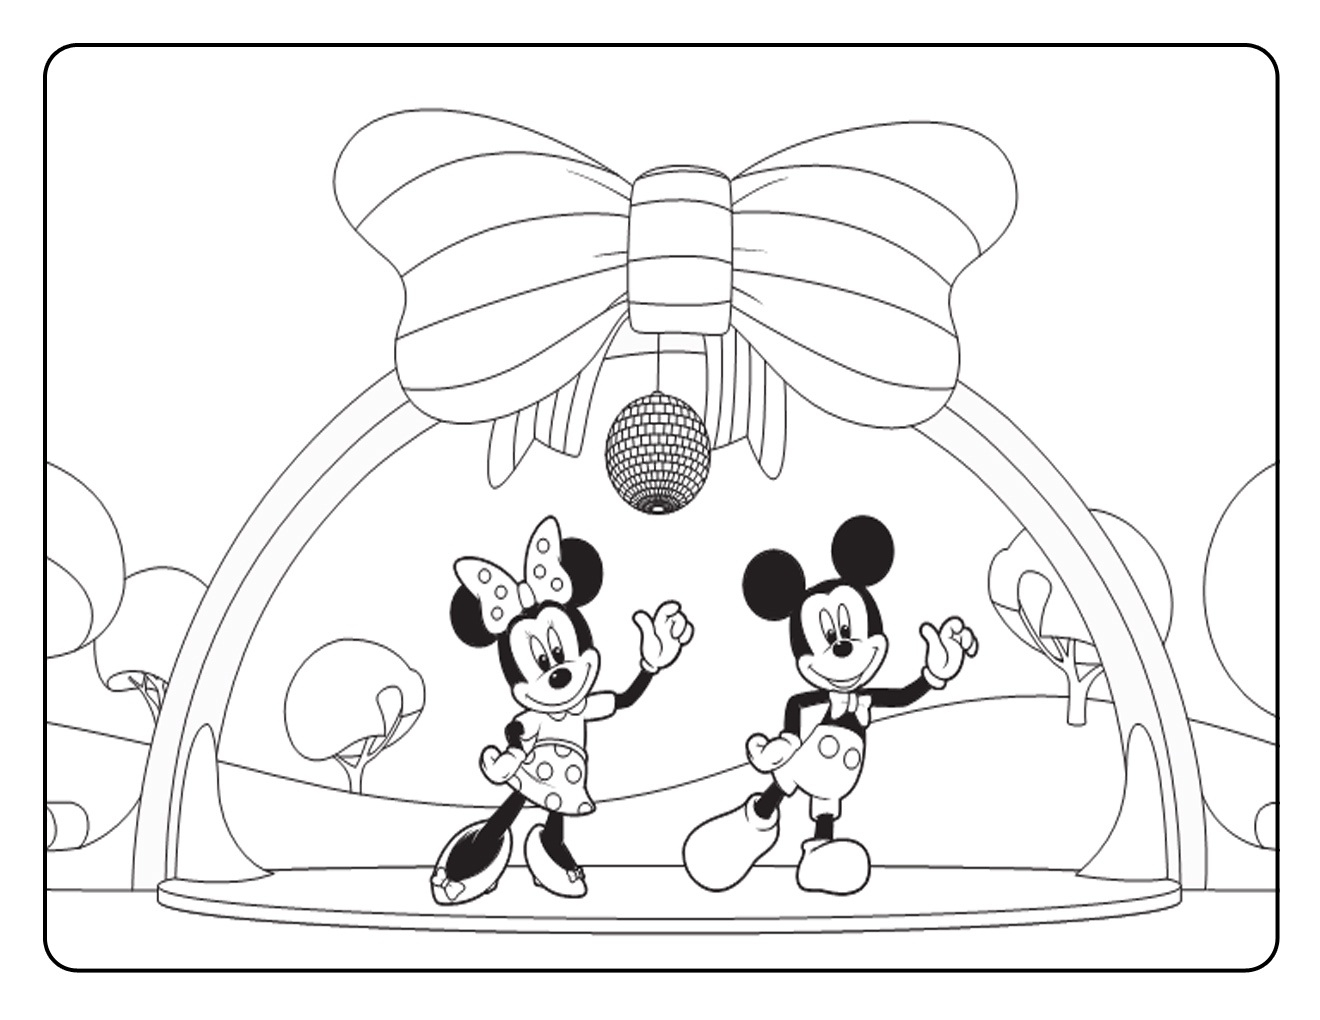 Mickey And Minnie Coloring Pages To Print Free Printable Mickey Mouse Coloring Pages For Kids